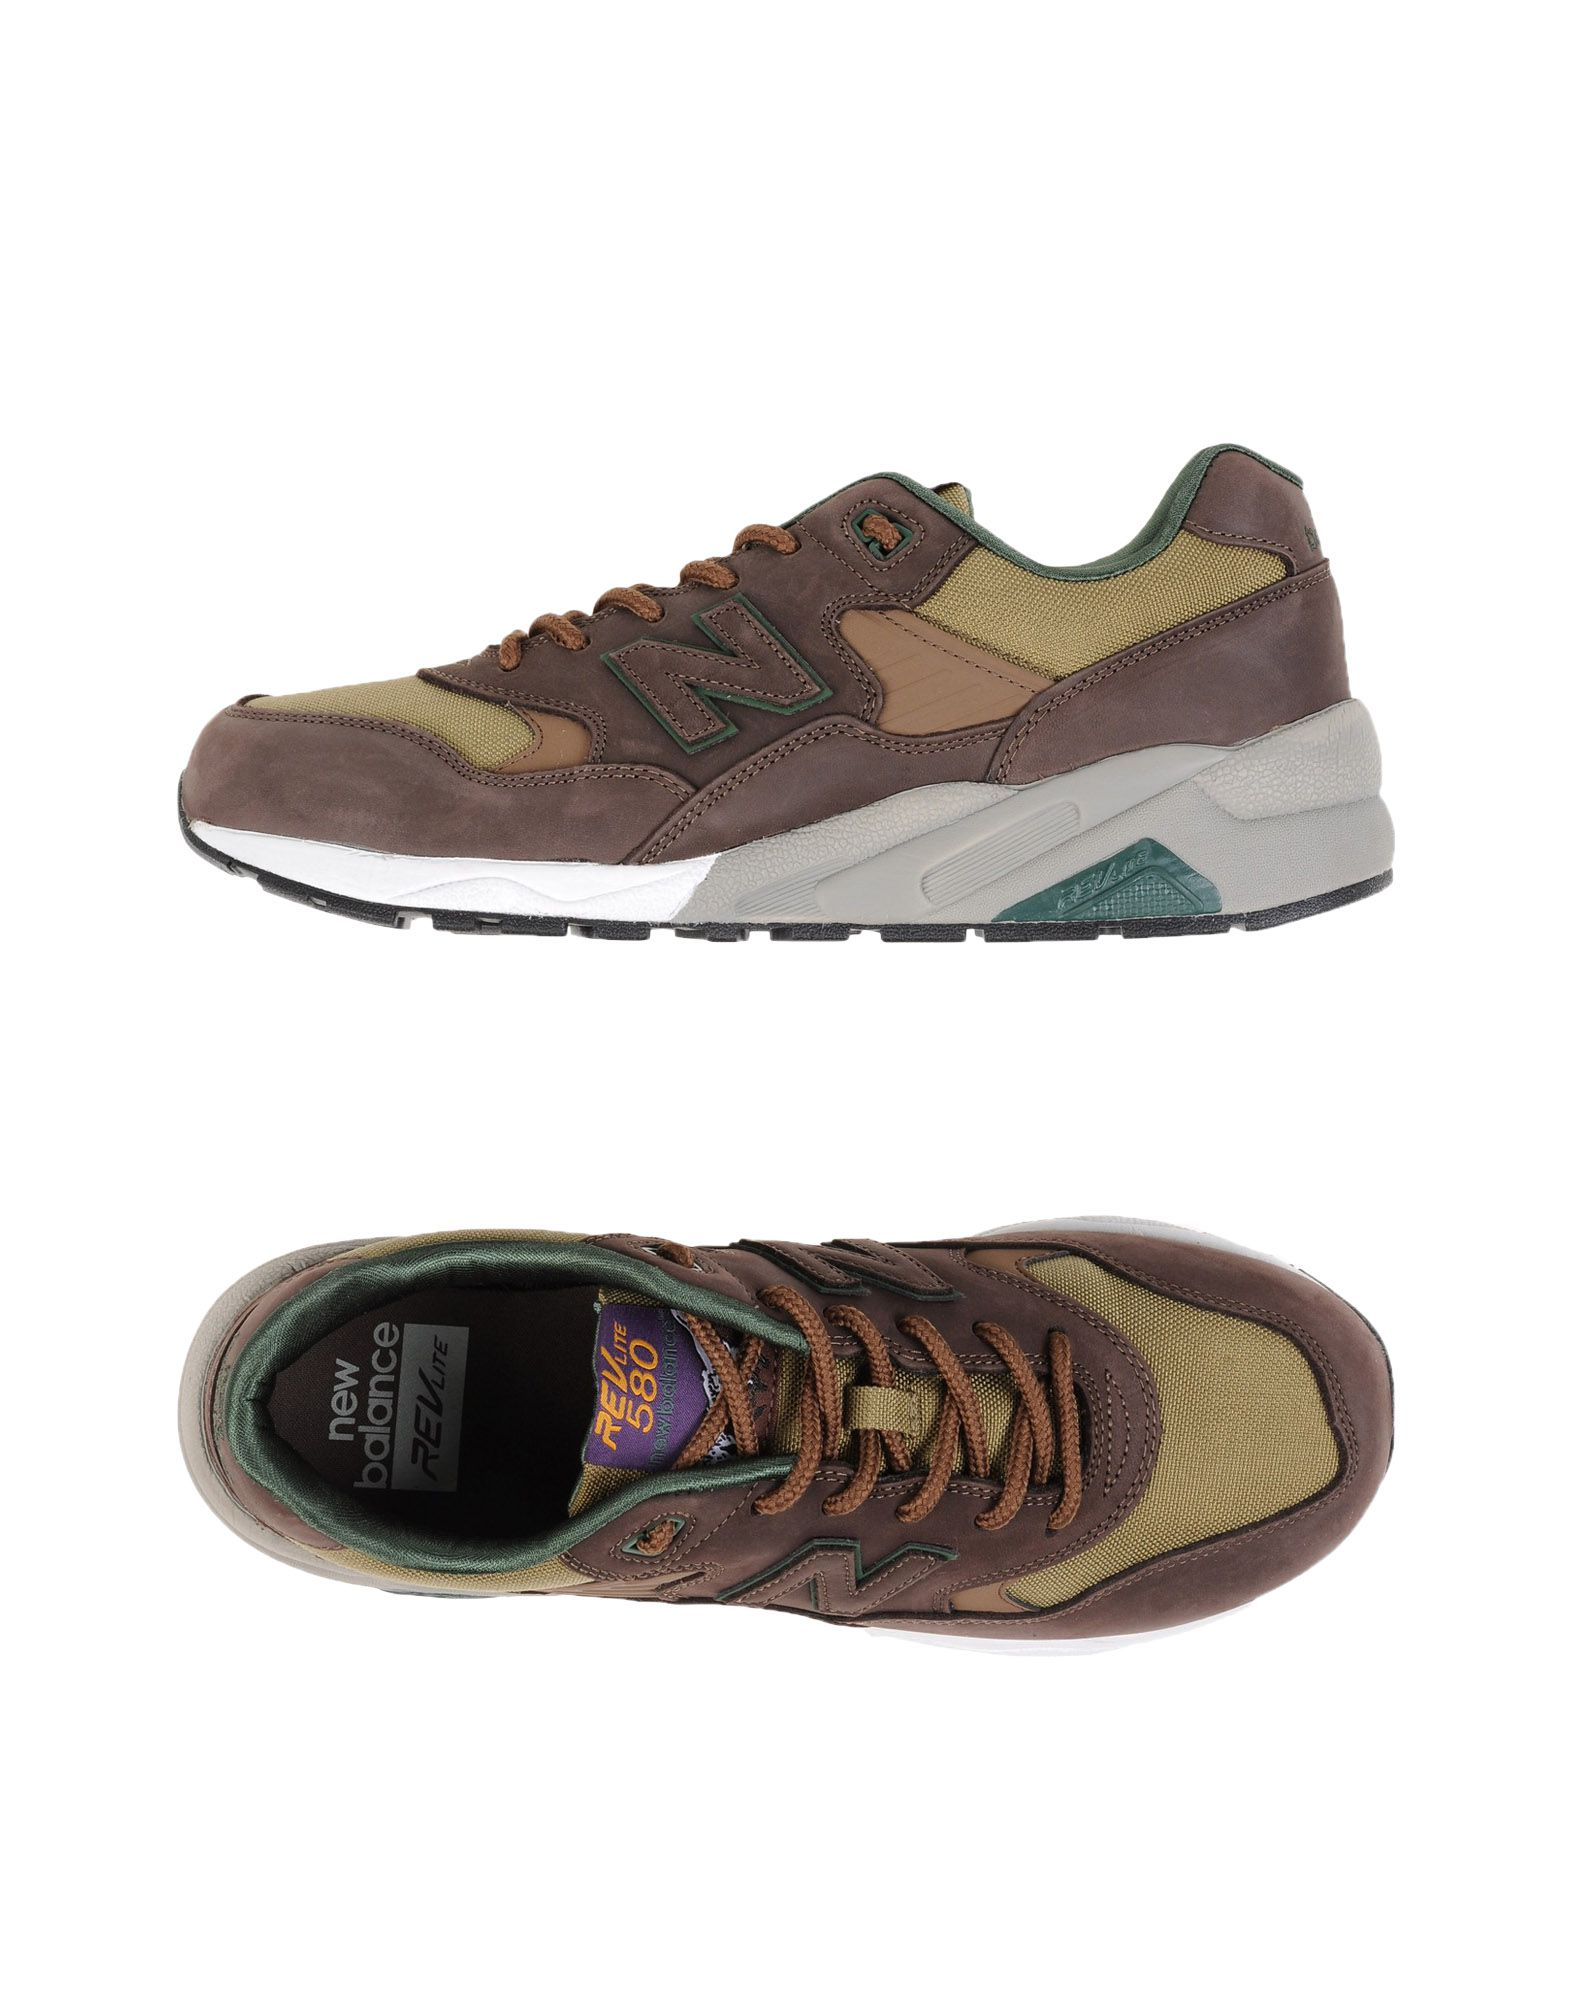 New Balance 580 Nubuck - Sneakers - Men Men Men New Balance Sneakers online on  Australia - 11104827CU 1ea446